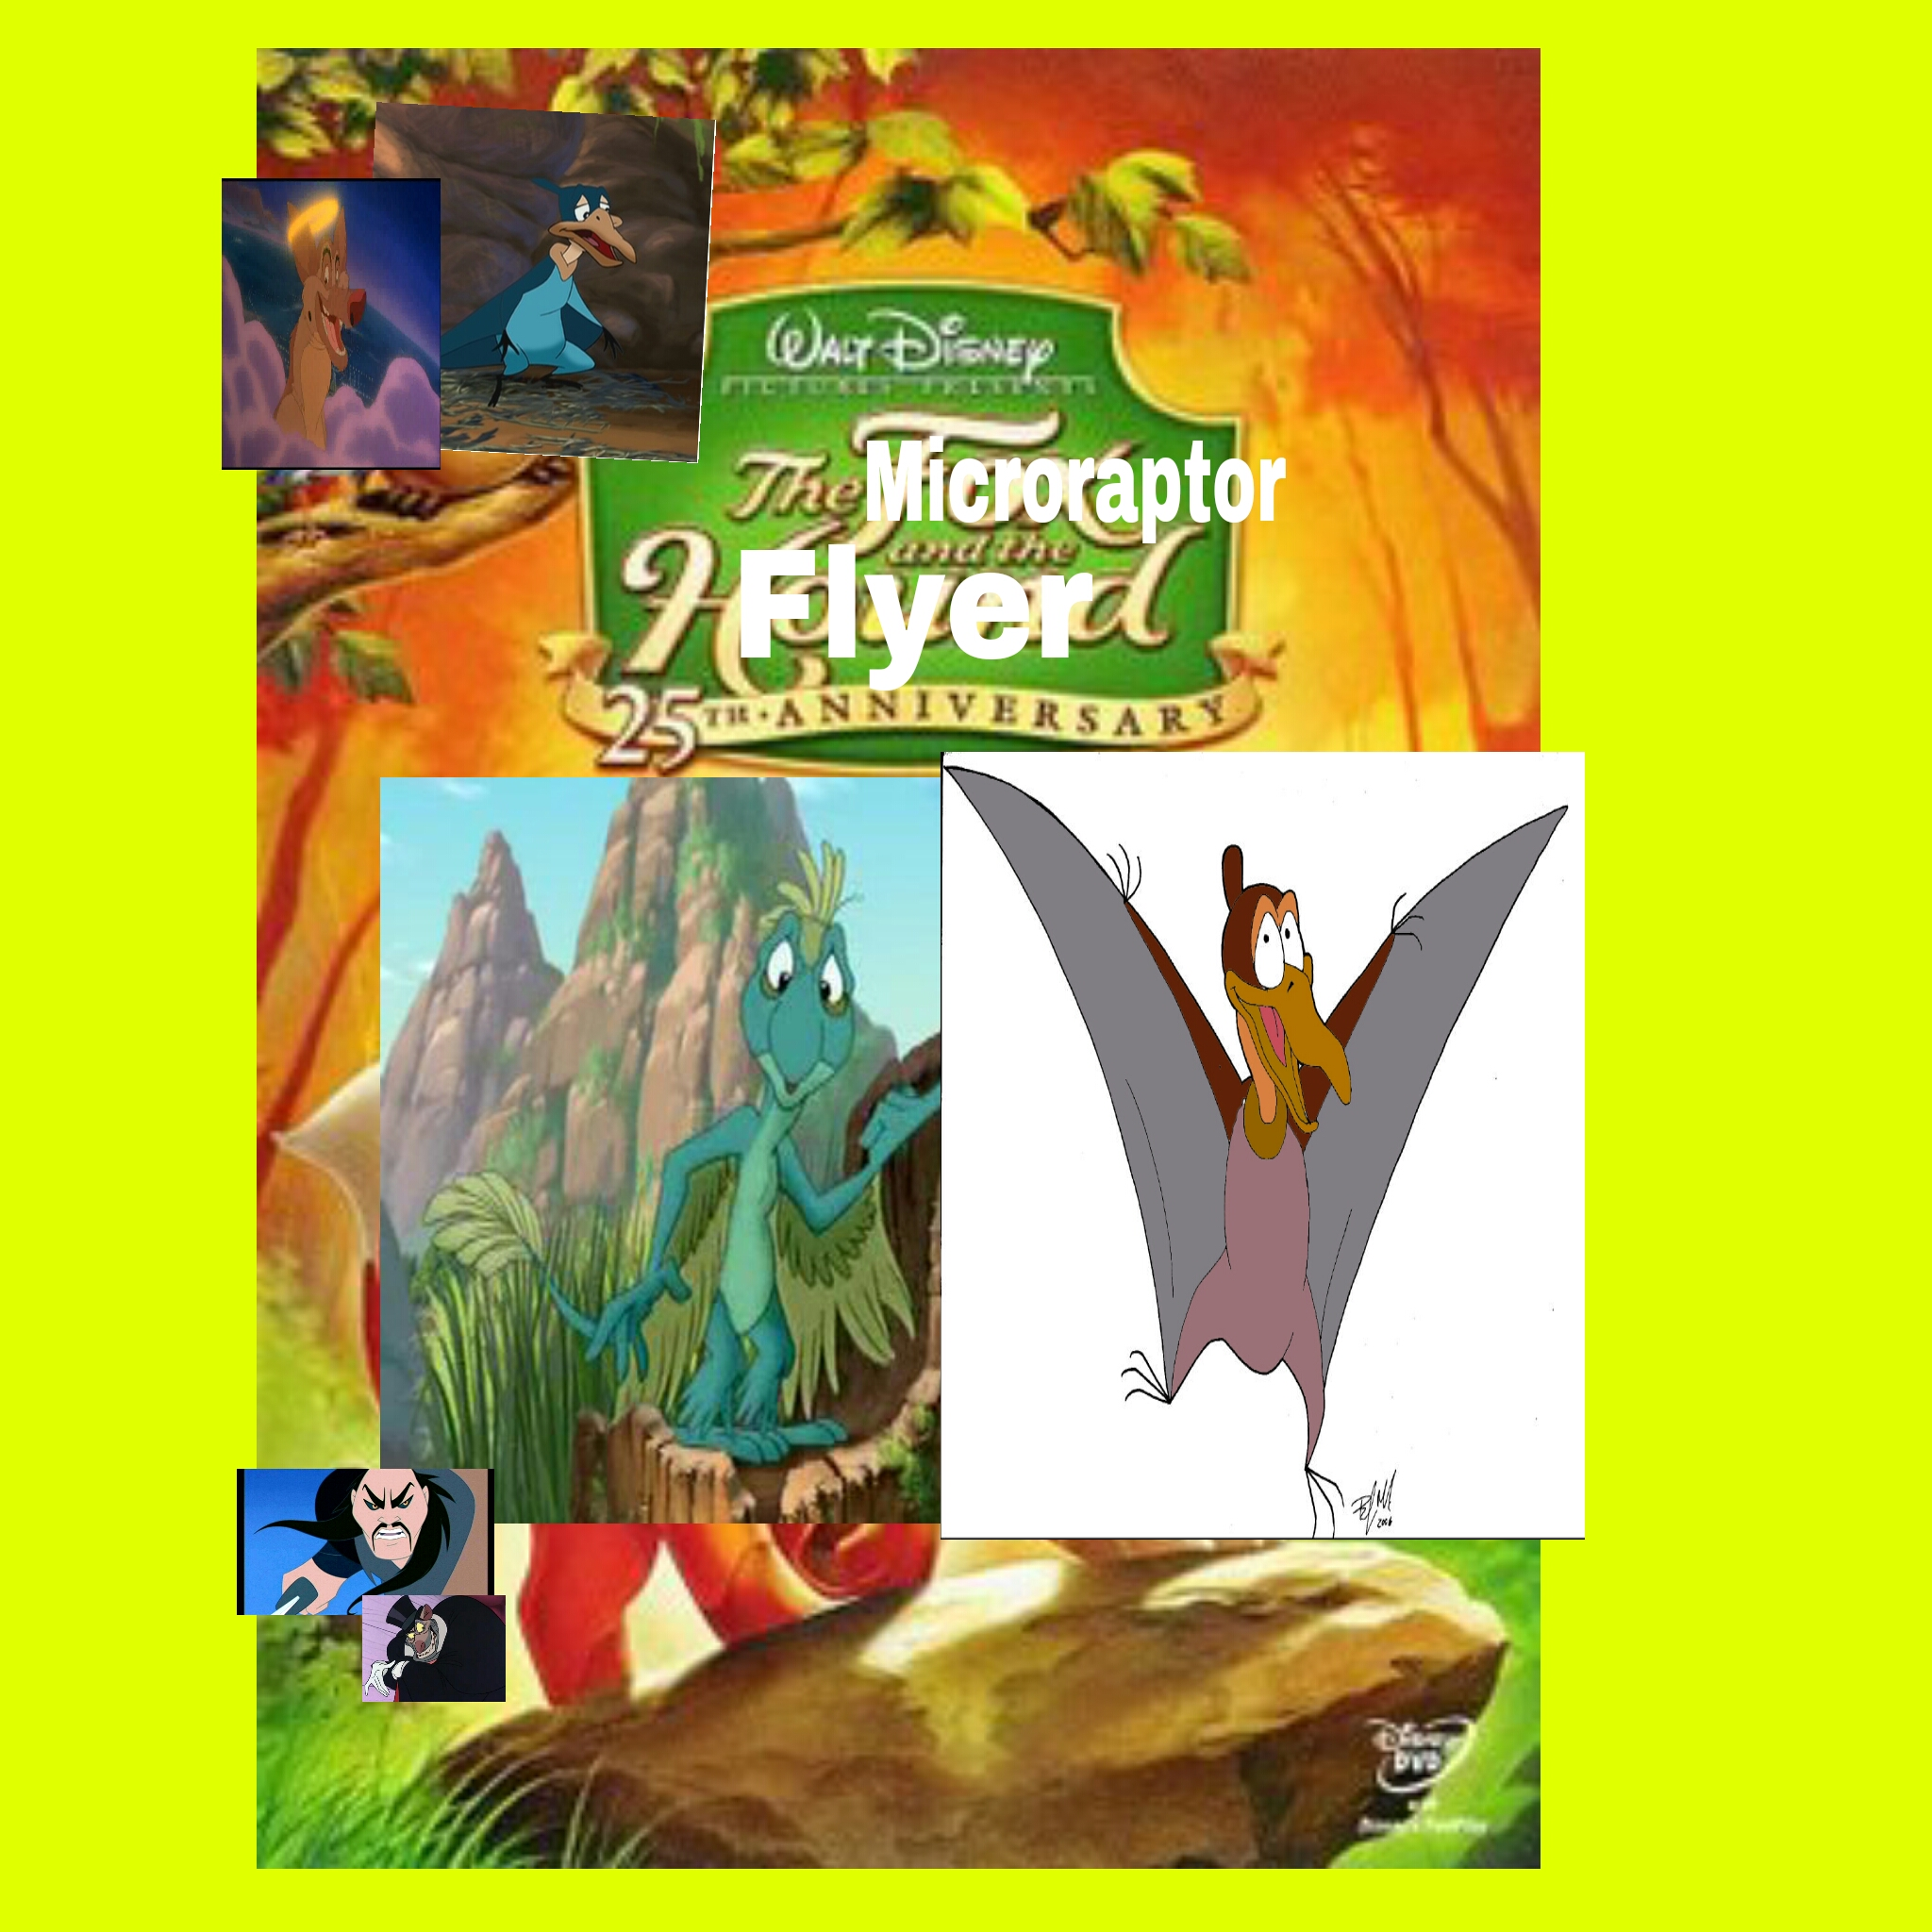 The Microraptor and the Flyer